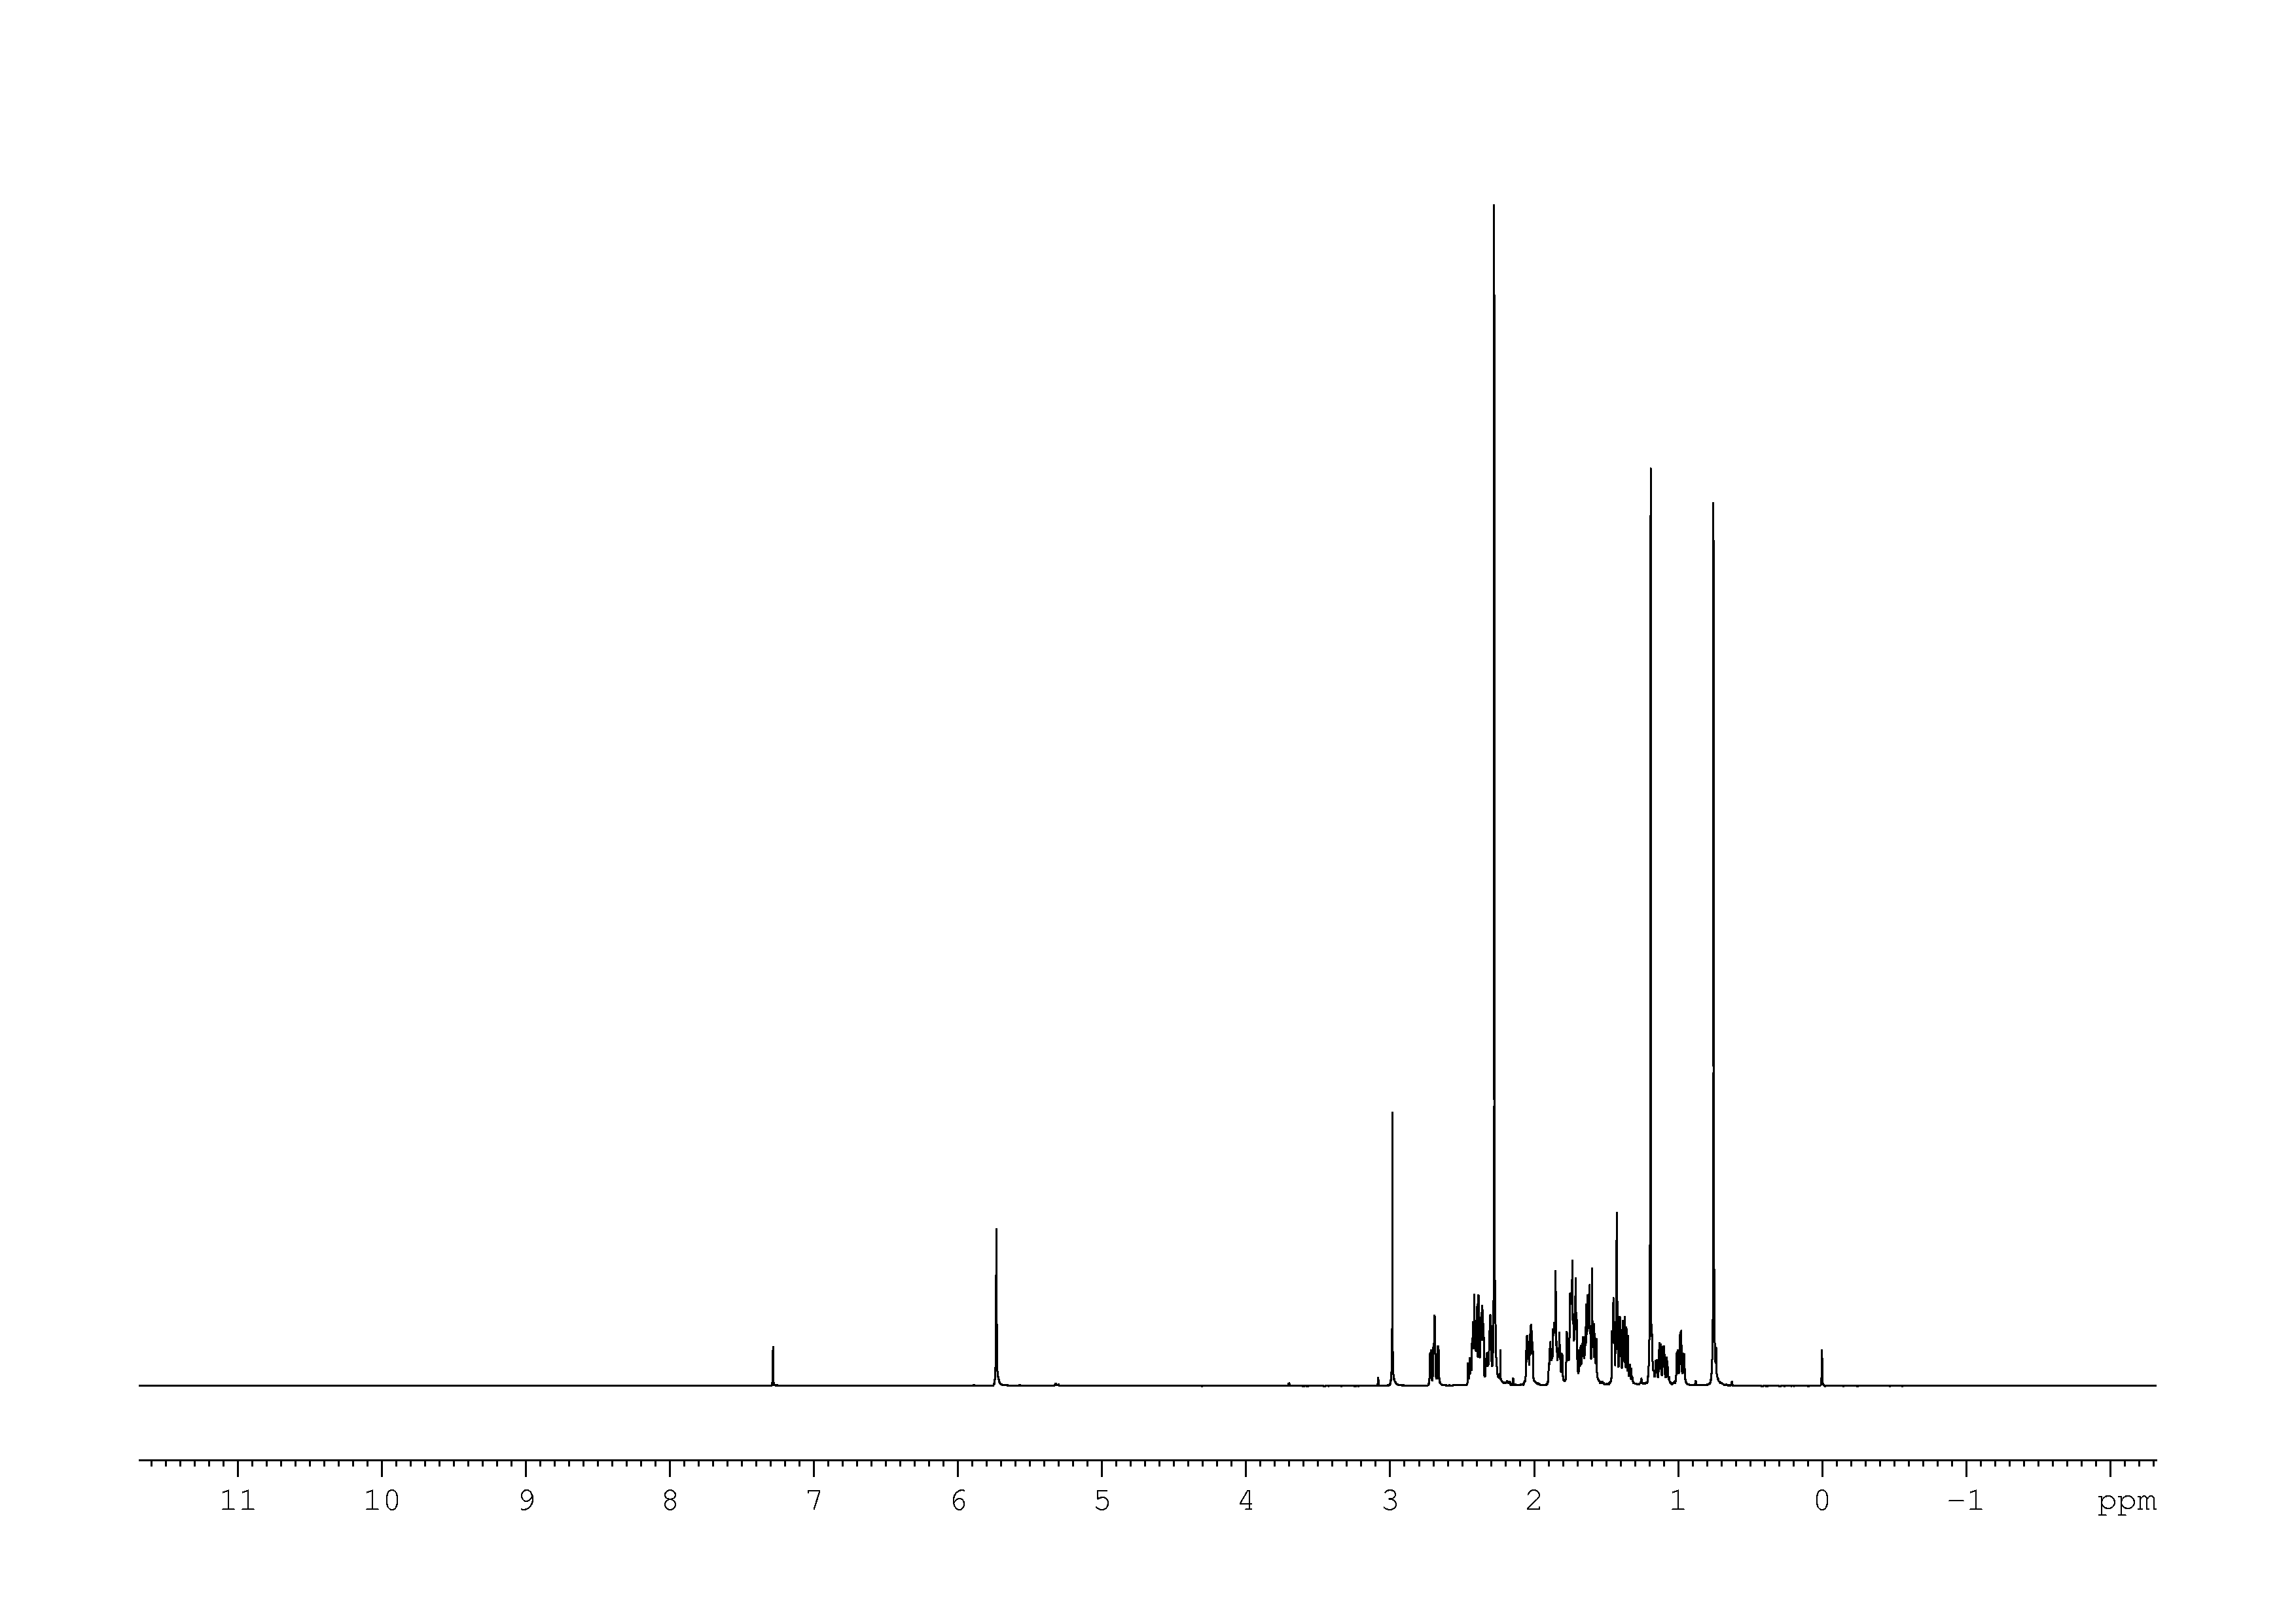 1D 1H, n/a spectrum for 17-alpha-hydroxyprogesterone